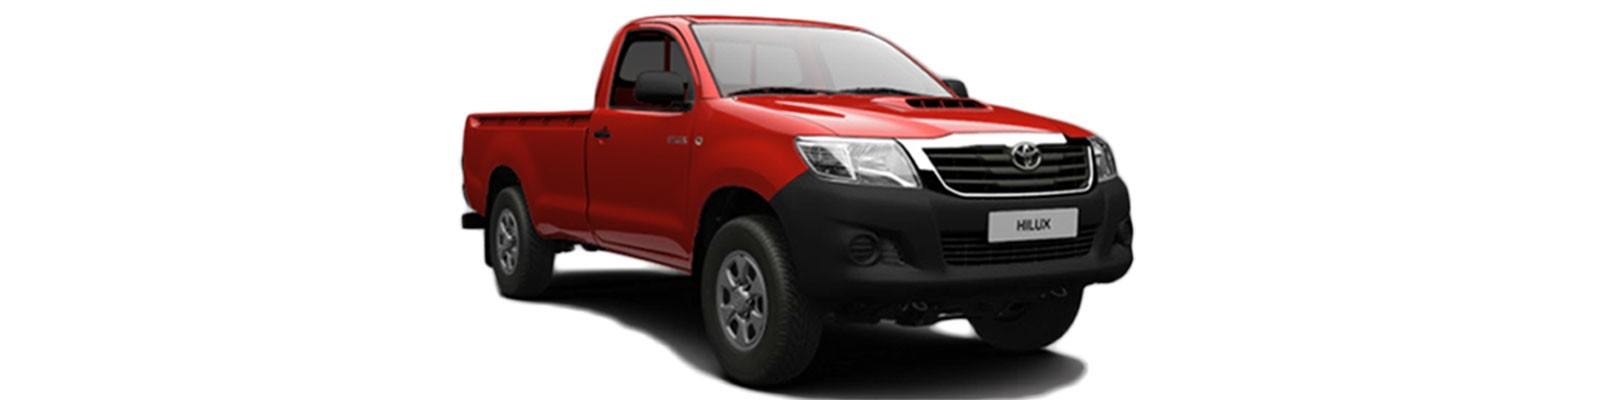 Accessories For Toyota Hilux Mk7 Single Cab 2012 To 2015